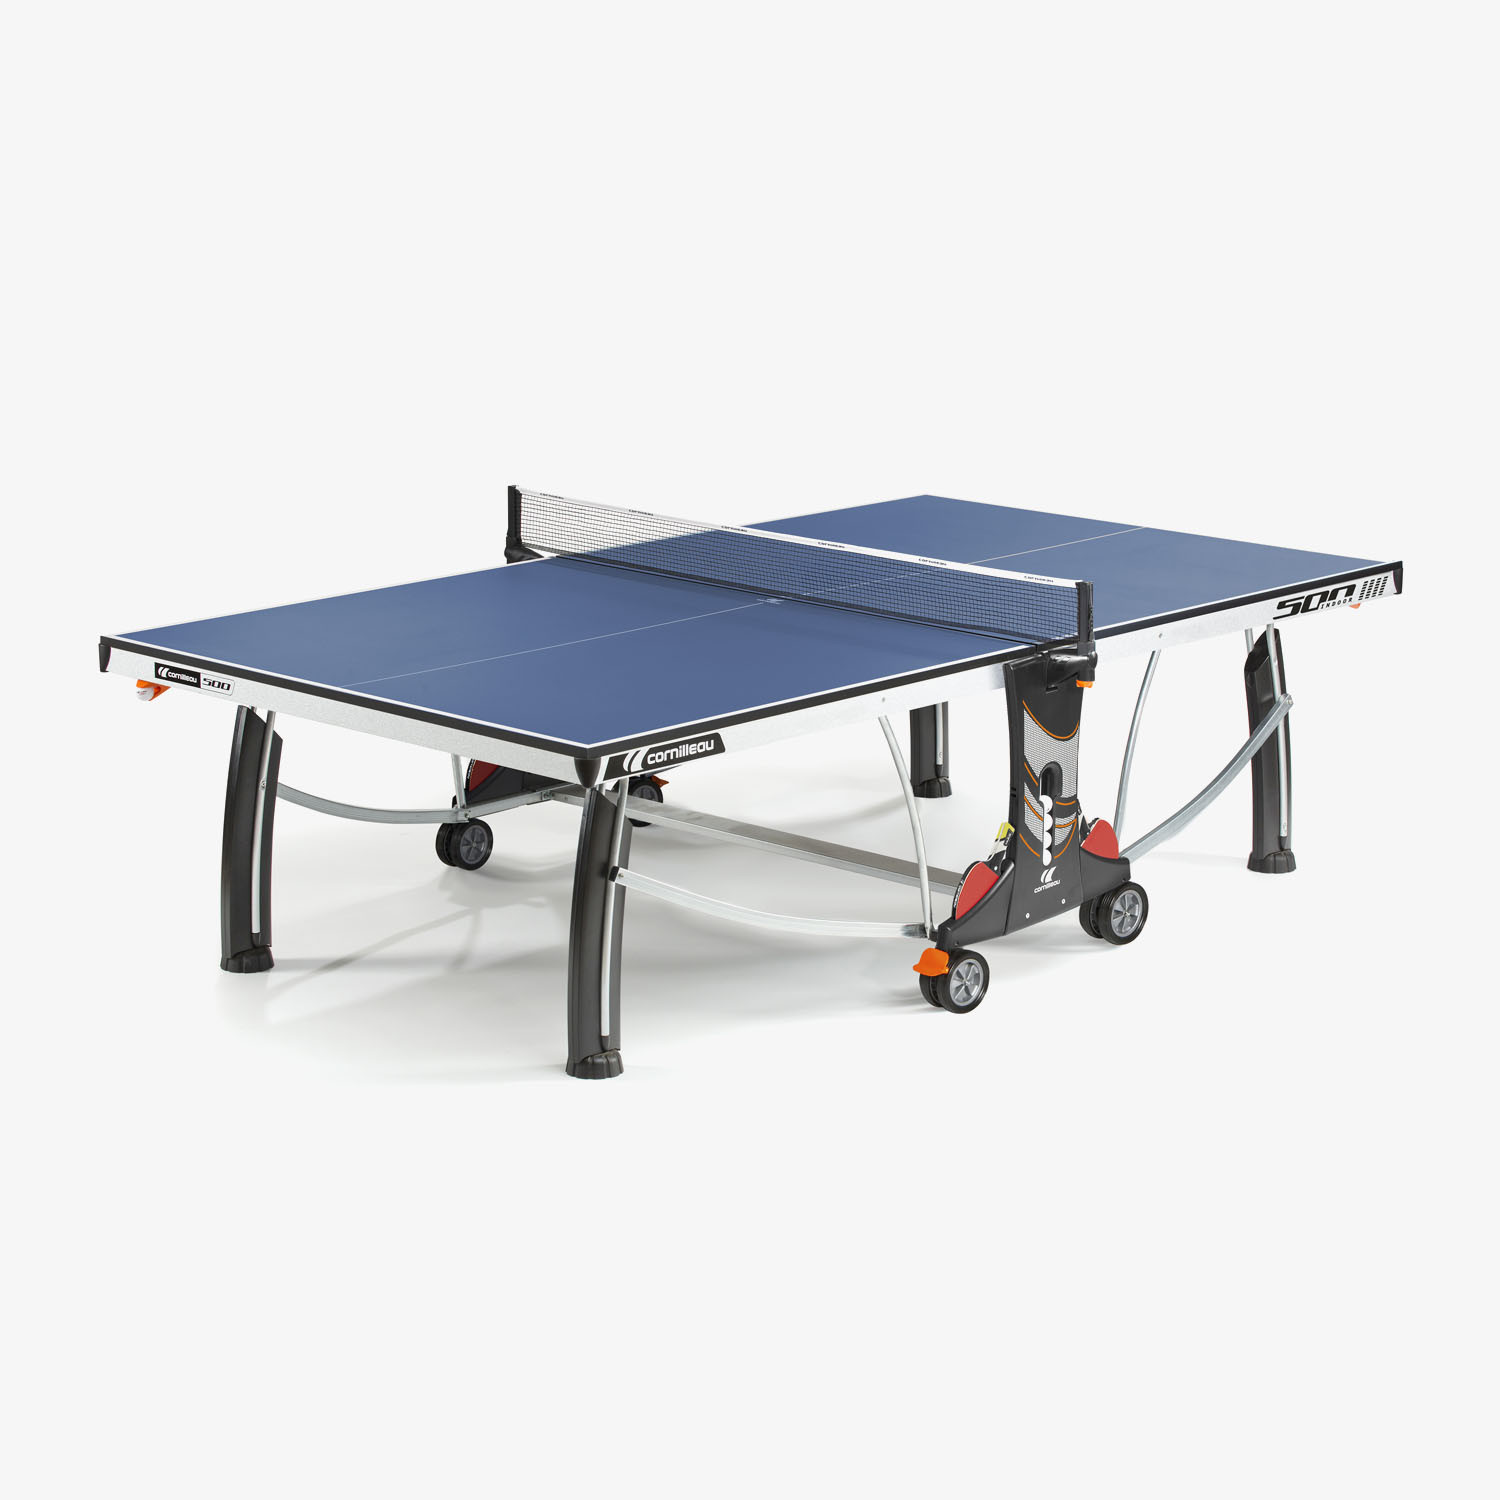 6 INDOOR ping pong table